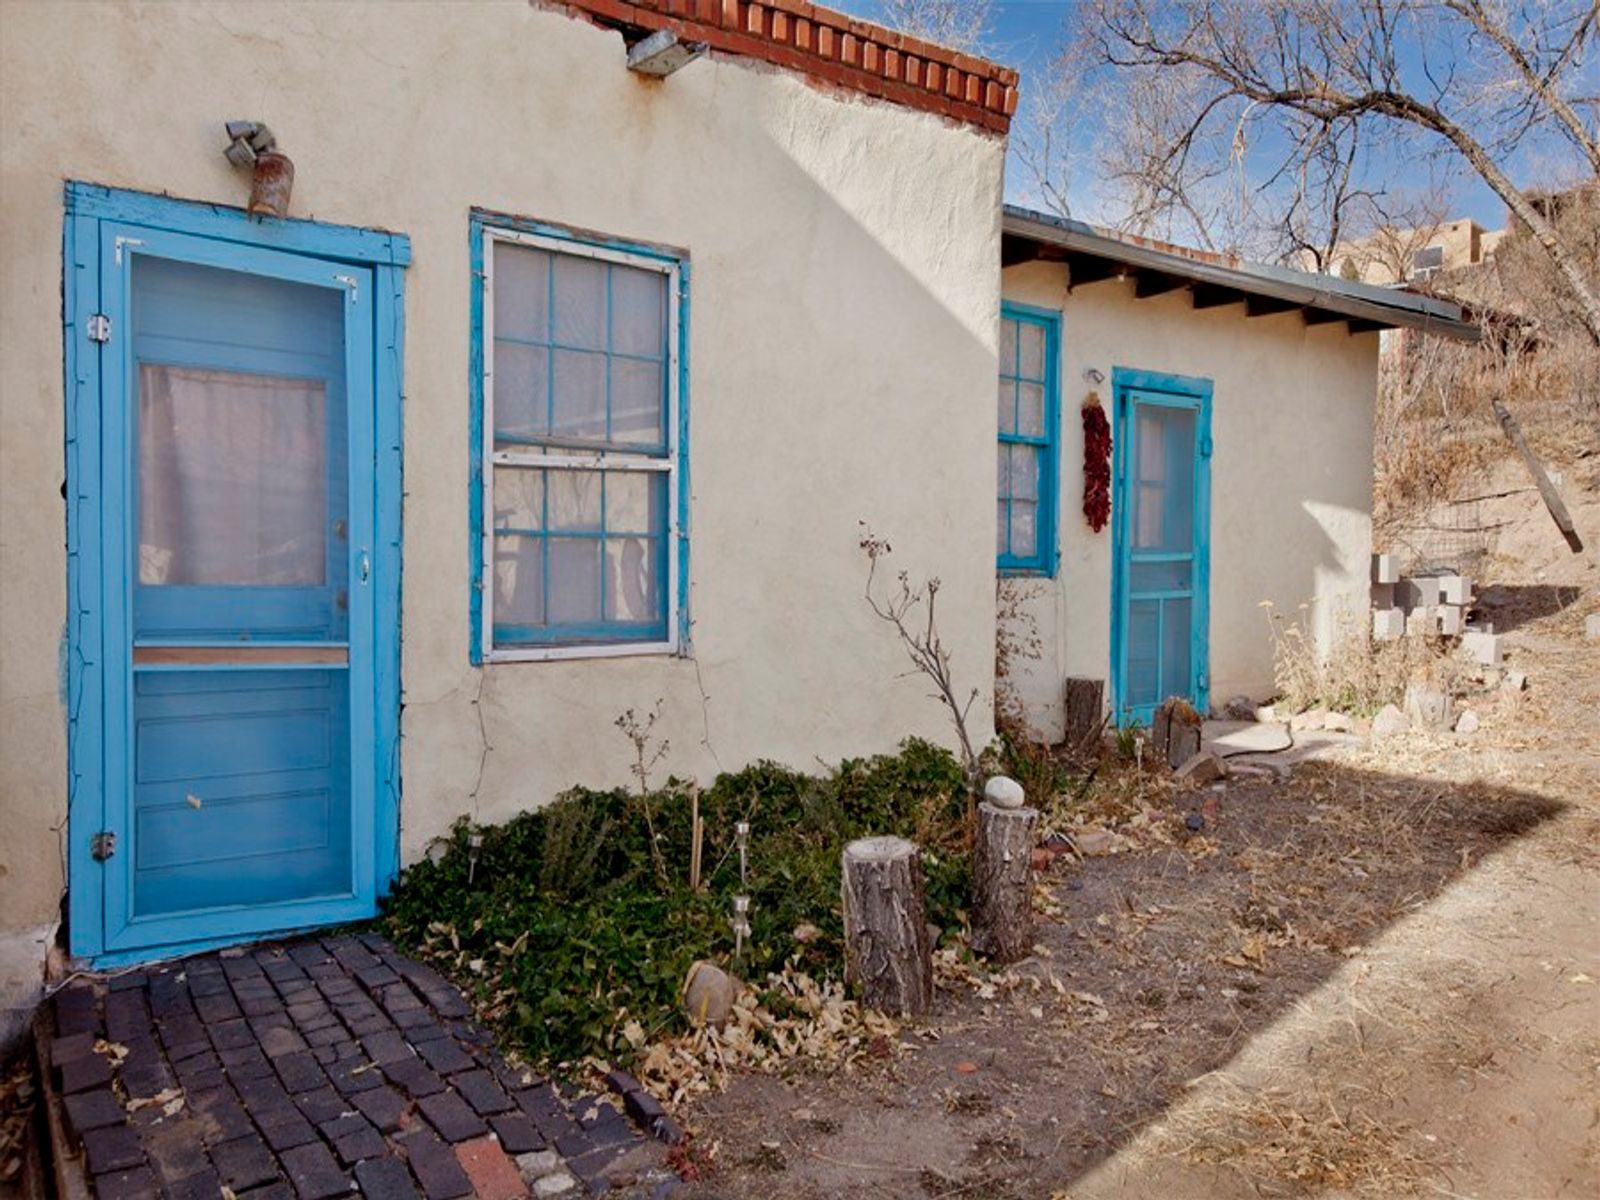 645 1/2 Palace Avenue, Santa Fe NM Single Family Home - Santa Fe Real Estate